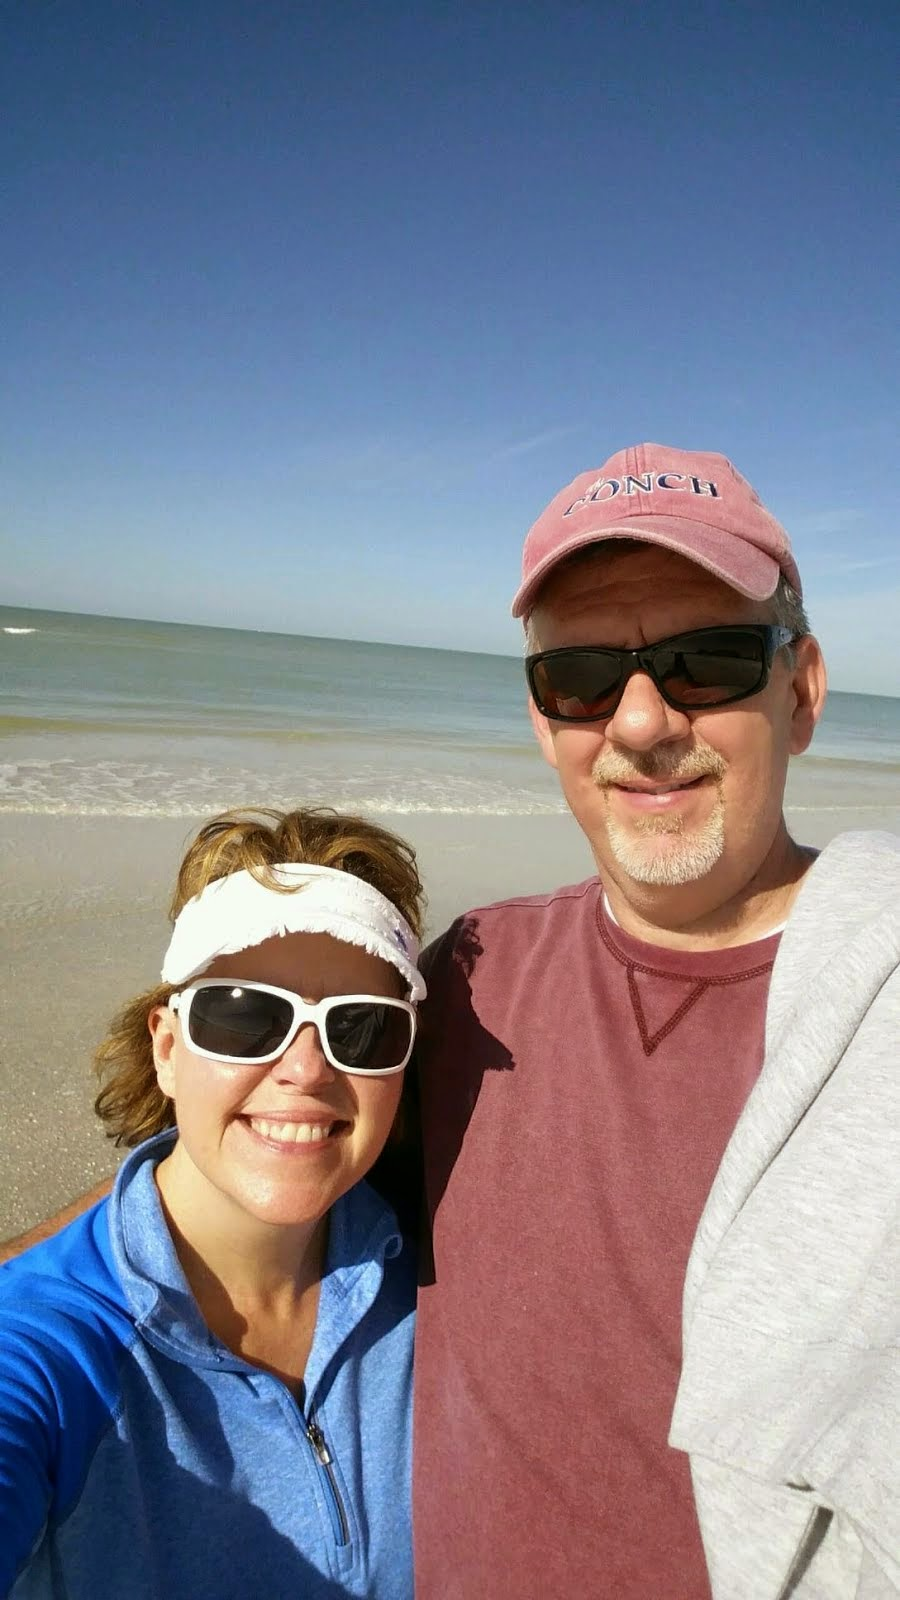 How I spent the weekend with my 29-year-old Valentine in  Florida and our misadventures in empty nesting days. Conversation, beach walks, and rollercoasters